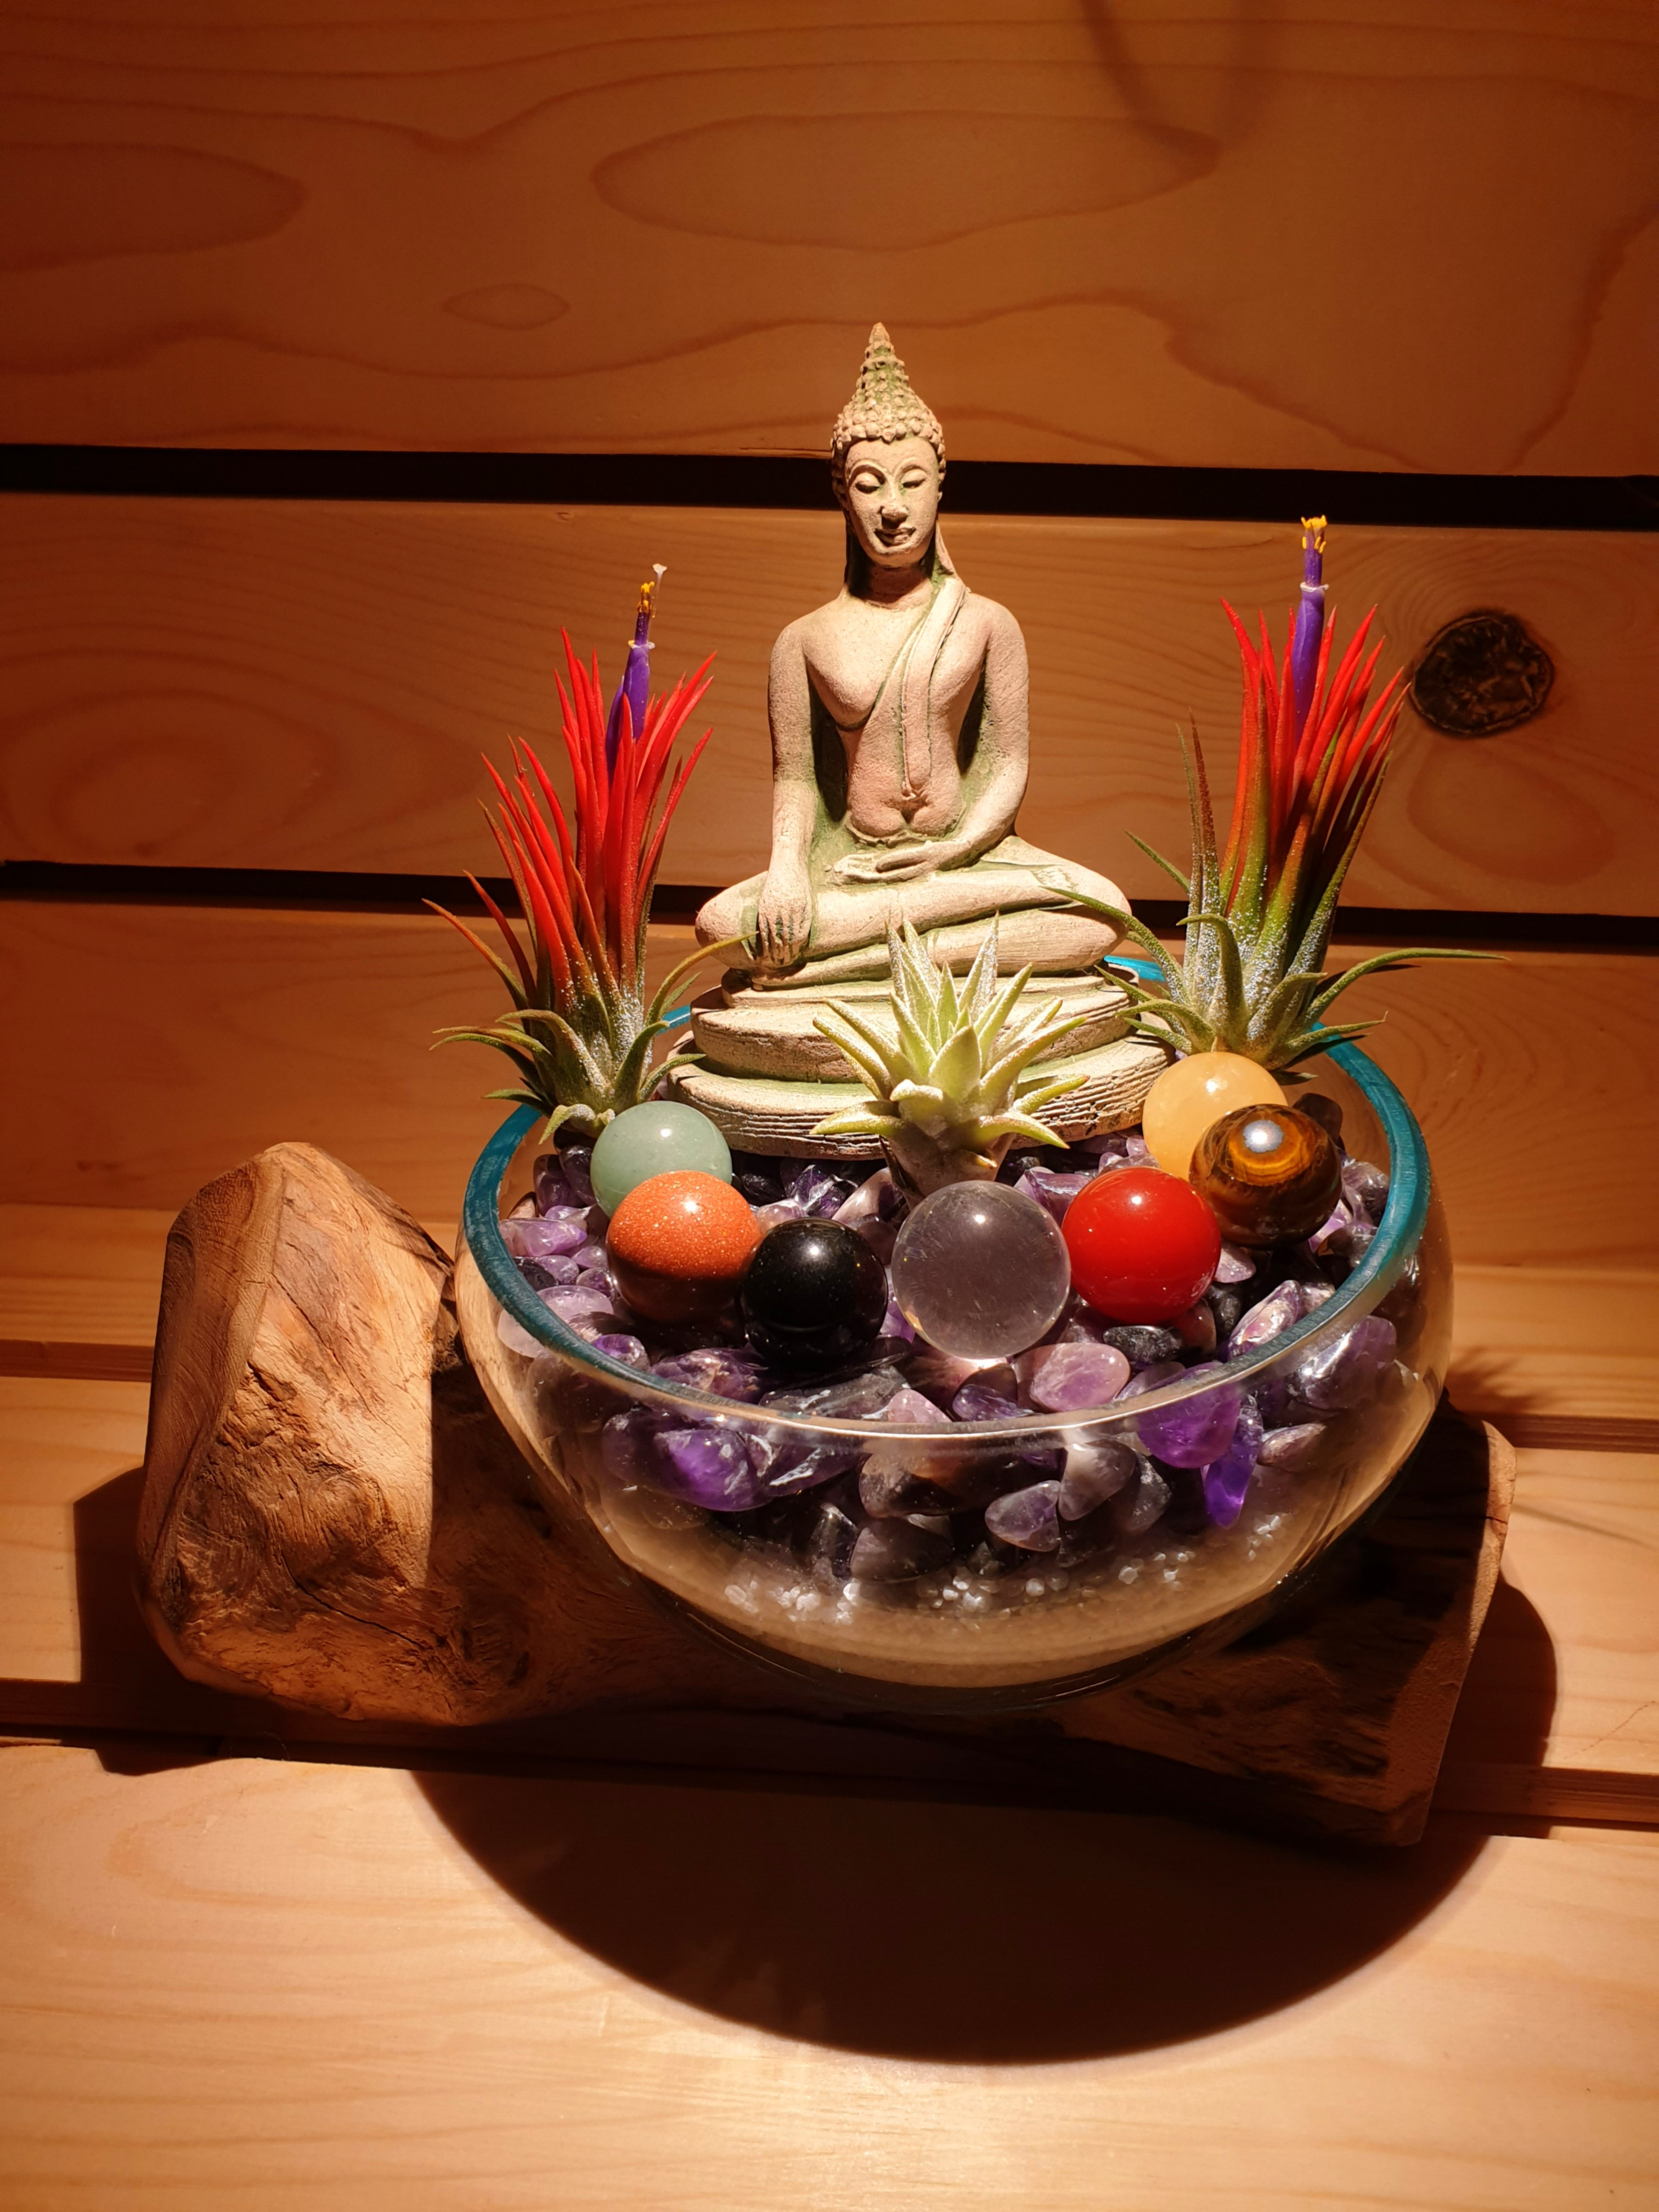 Zen Series Buddha Crystals with Air Plants on Teak Wood